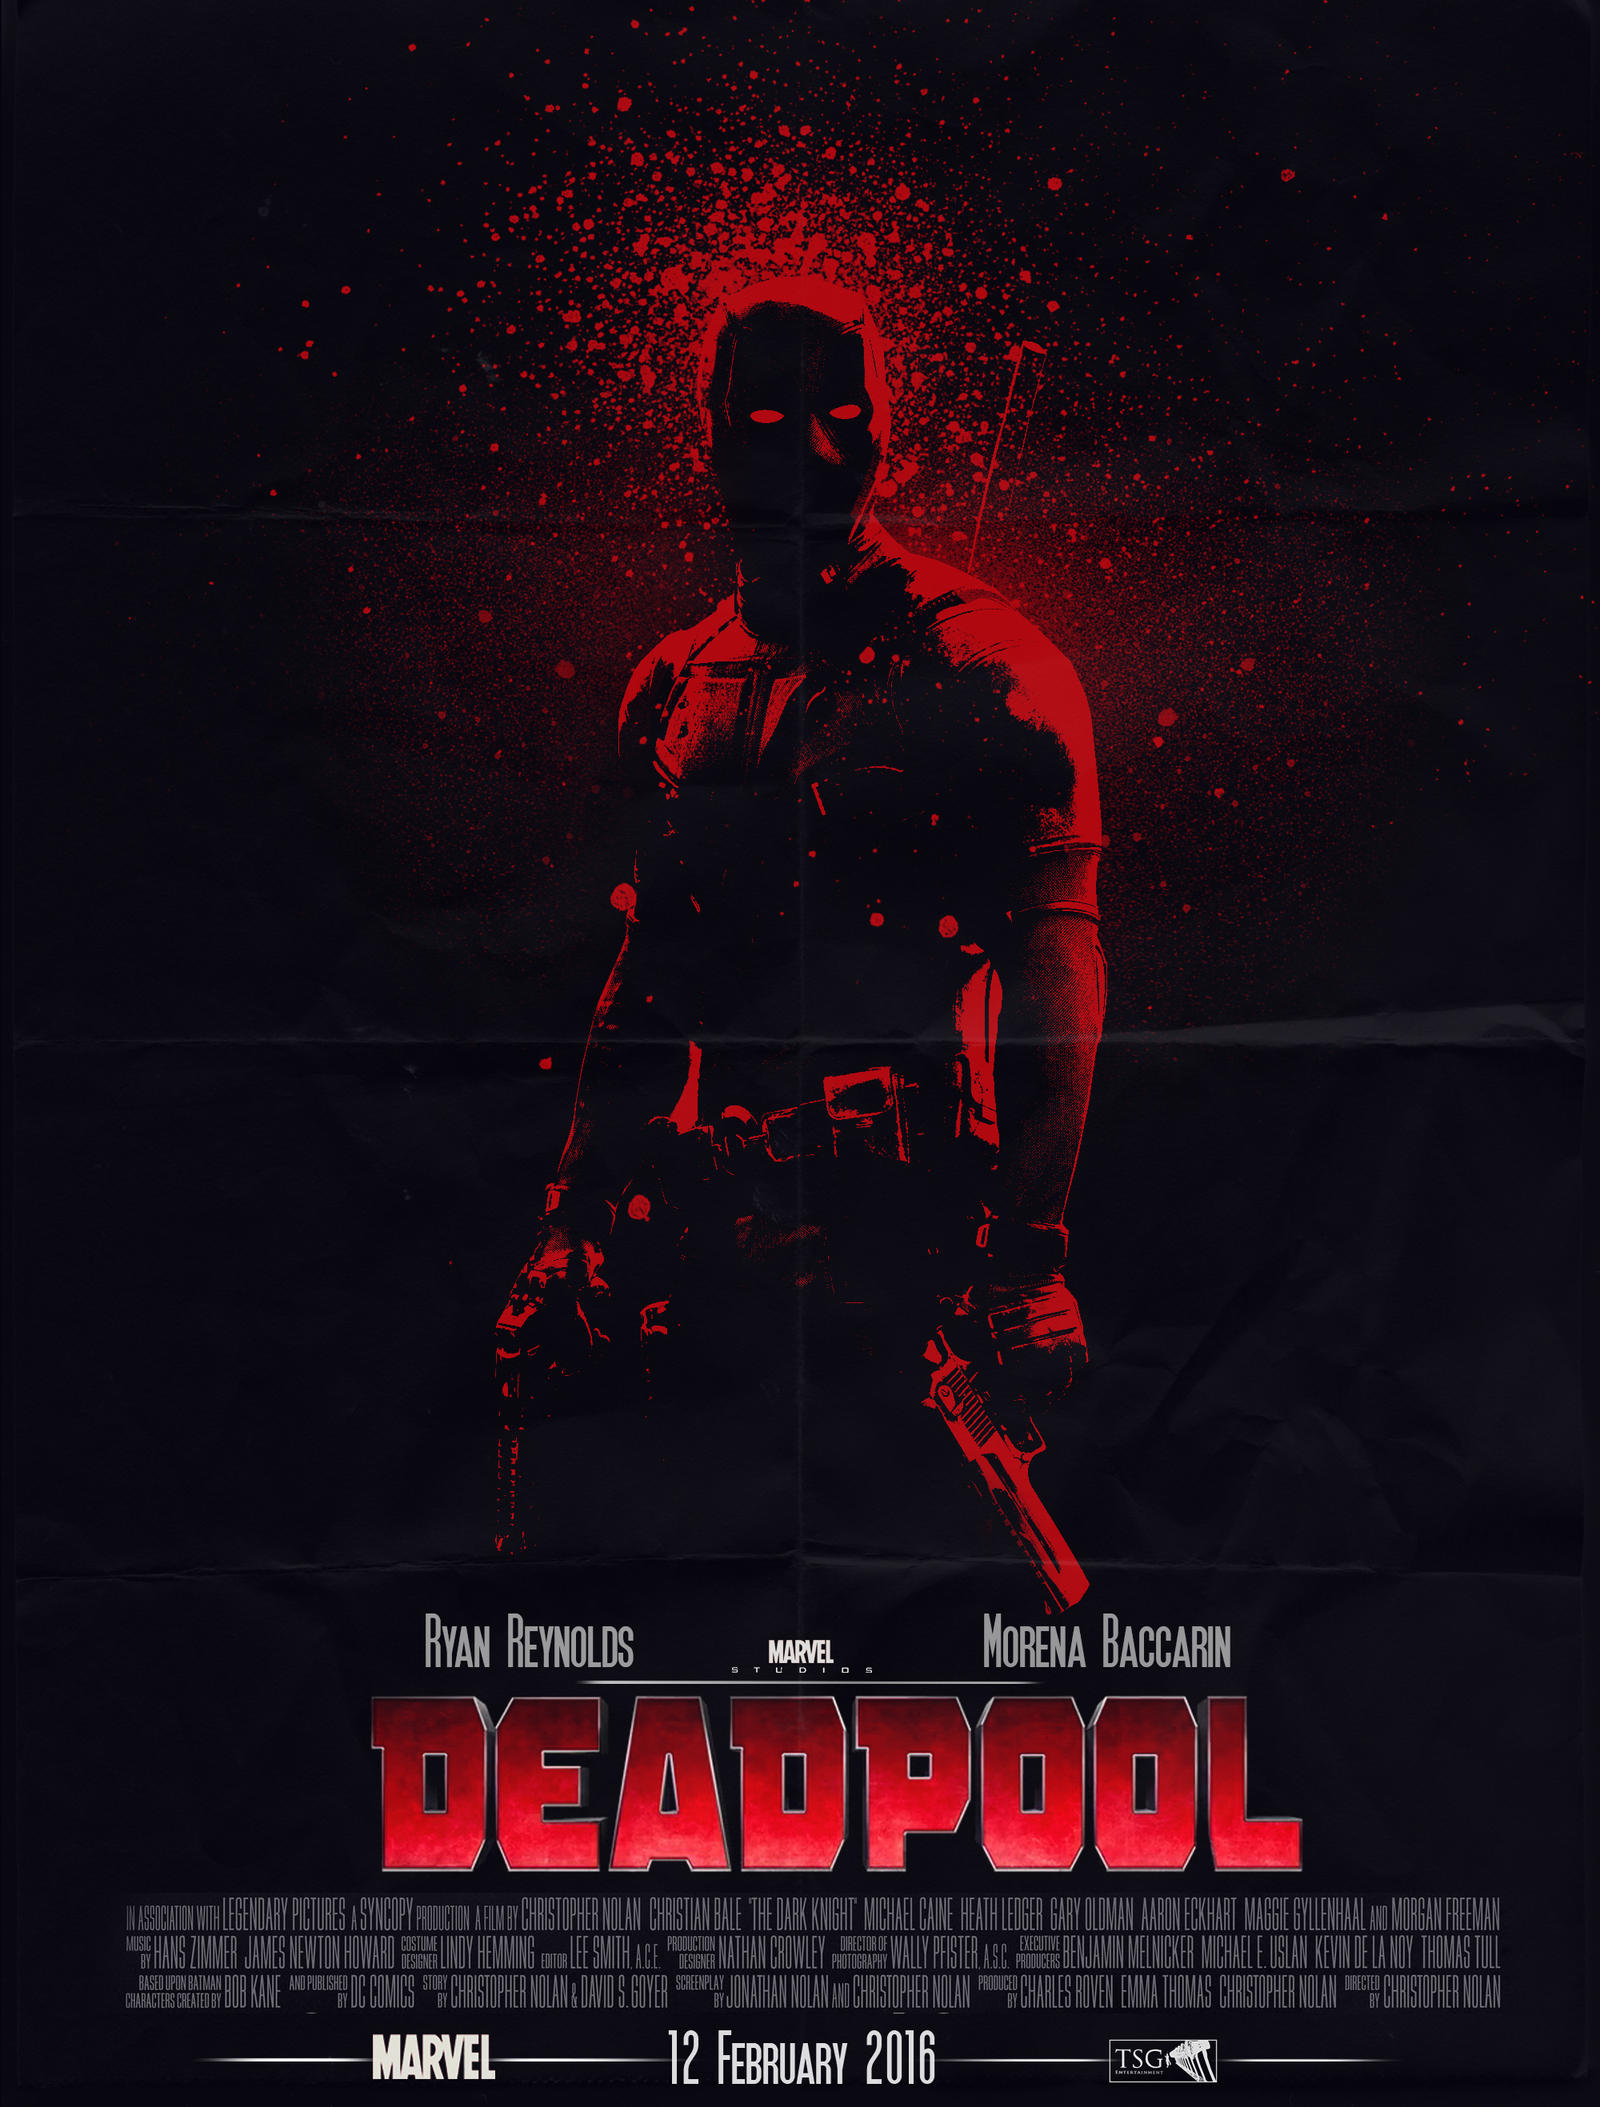 Custom Deadpool movie poster by LilouFranchise on DeviantArt